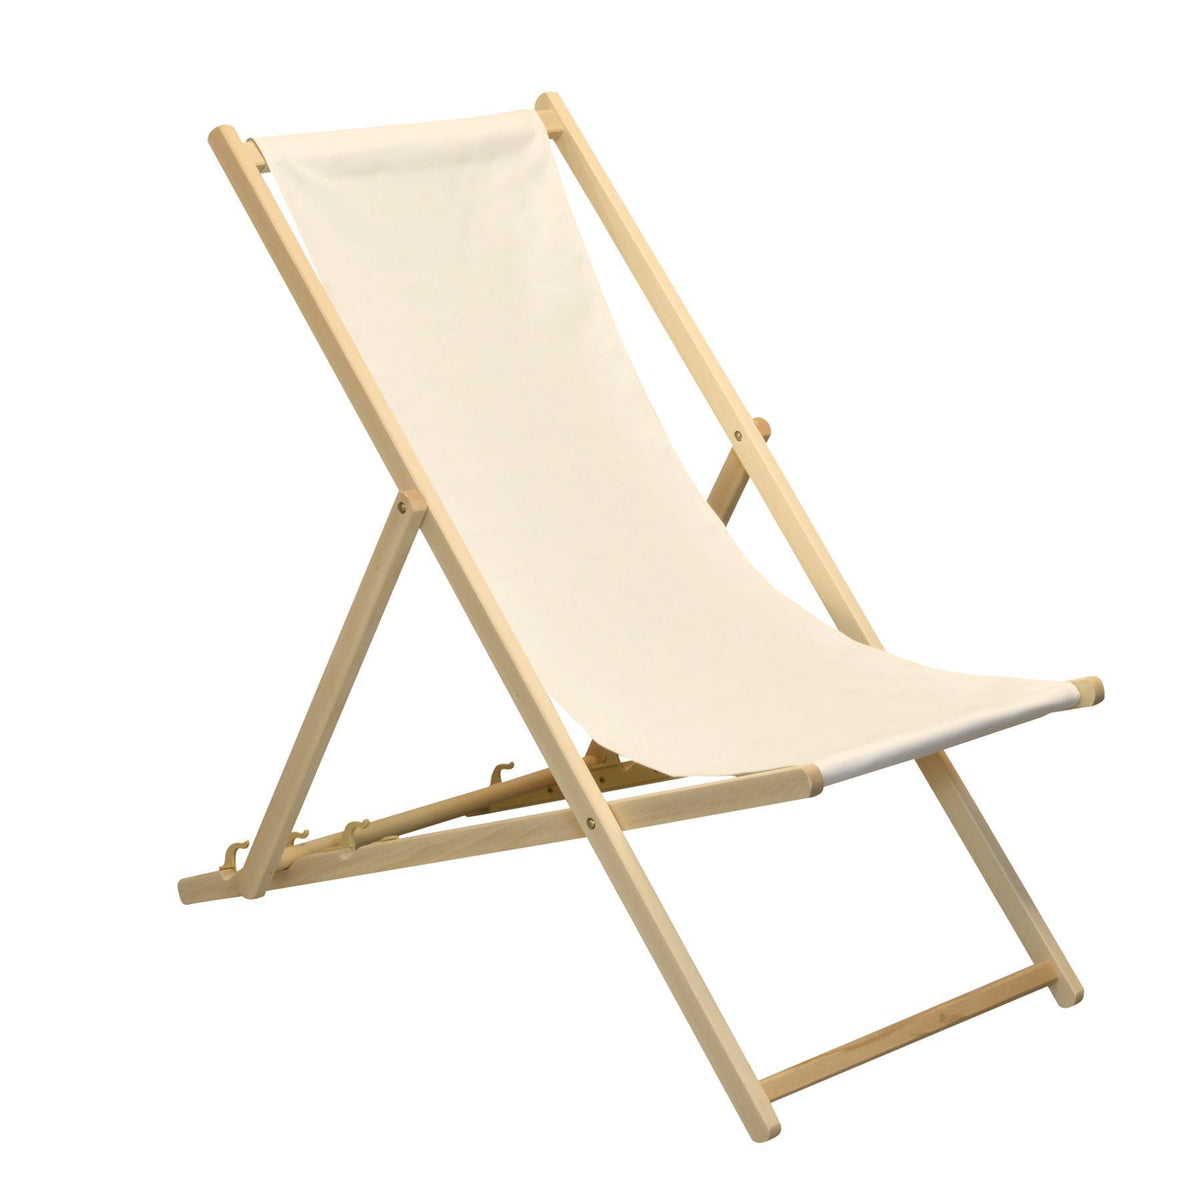 Enjoy the outdoors with the Harbour Housewares Beach Deck Chair - Cream with Beech Wood Frame